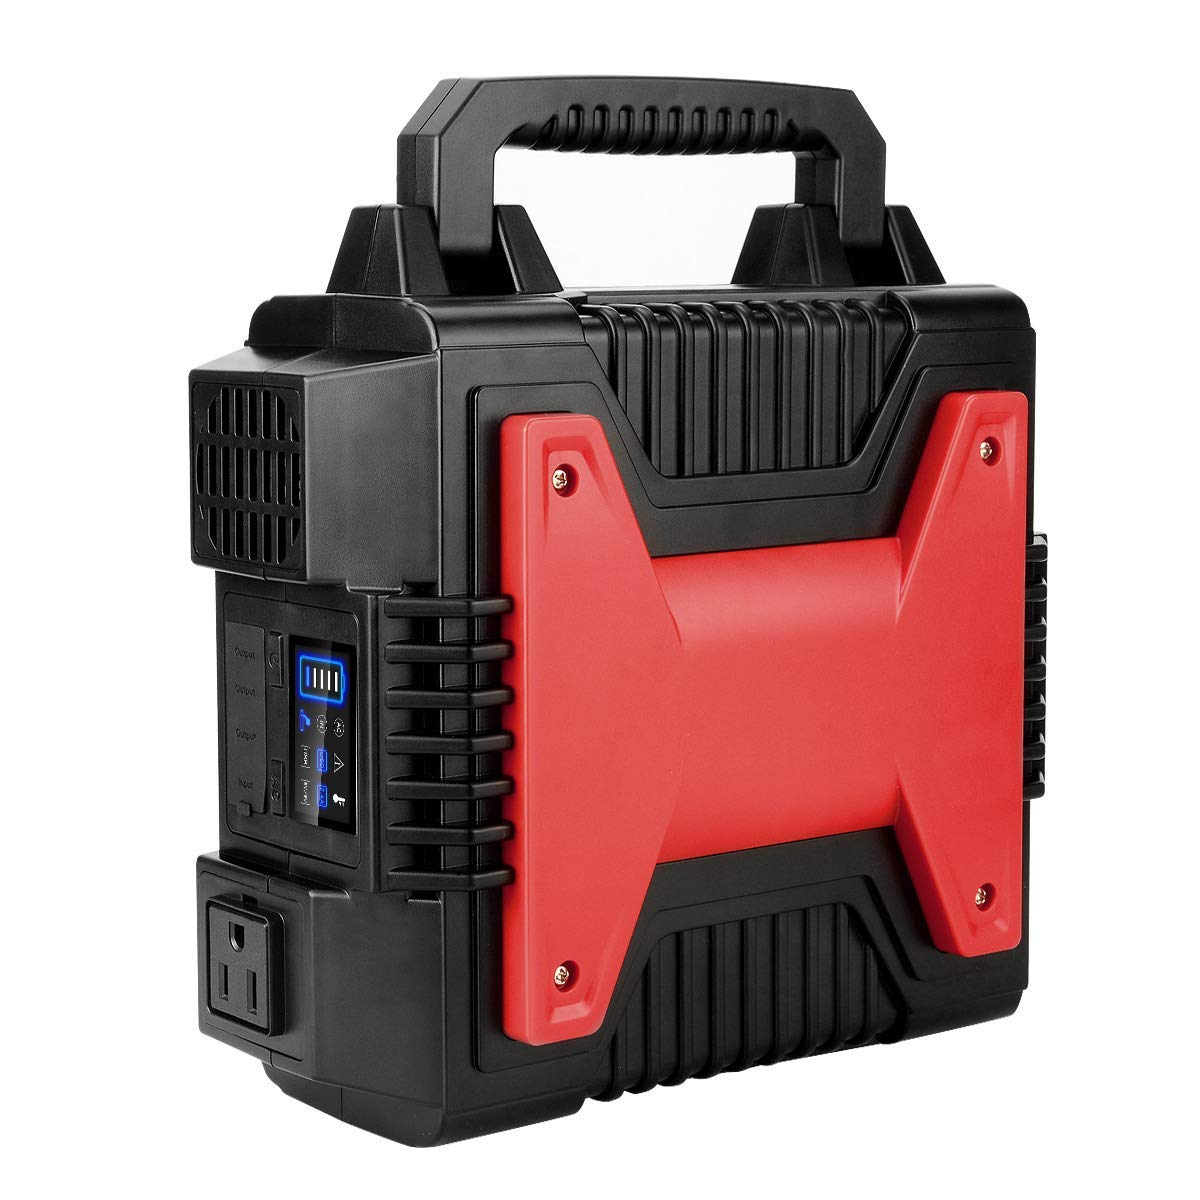 Solar Generator Power Inverter 200Wh/54000Mah AC Power Bank Portable Charger Power Station with Dual 110V AC Outlet, 1 DC Outlet, Dual USB Portsfor Camping, Travel, CPAP, Emergency Backup, Home